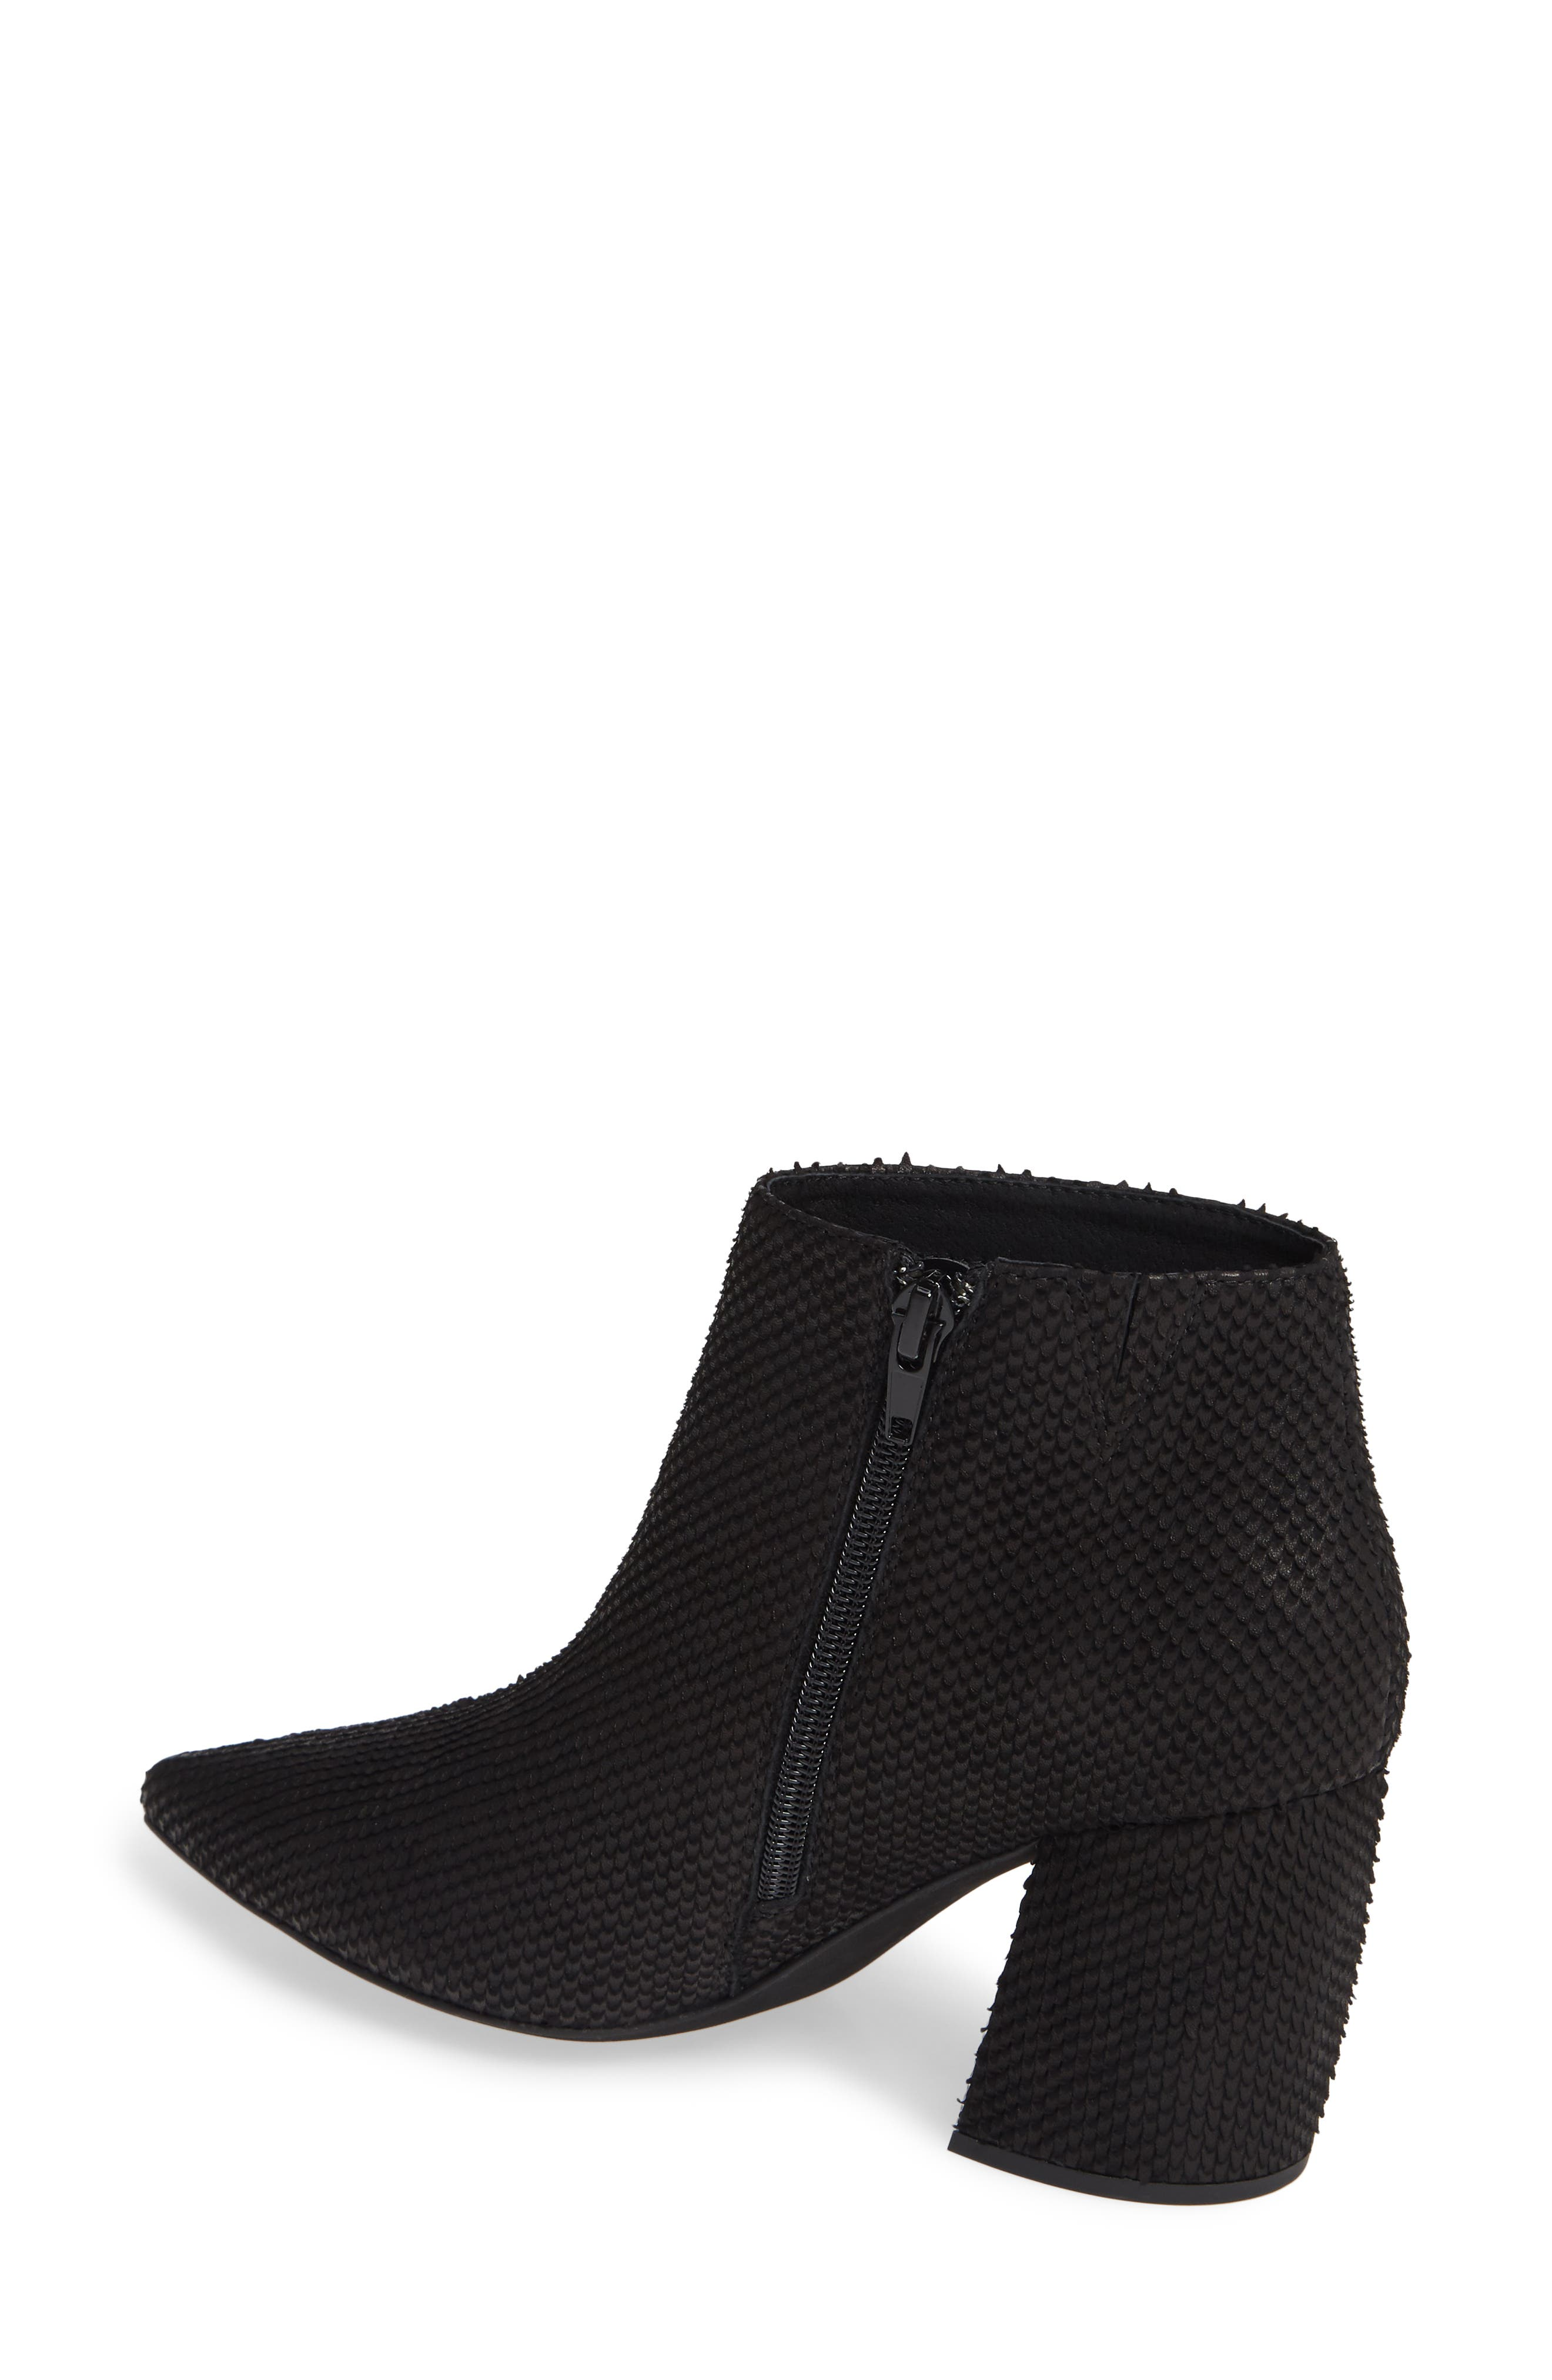 Total Ankle Bootie,                             Alternate thumbnail 2, color,                             BLACK SCALES